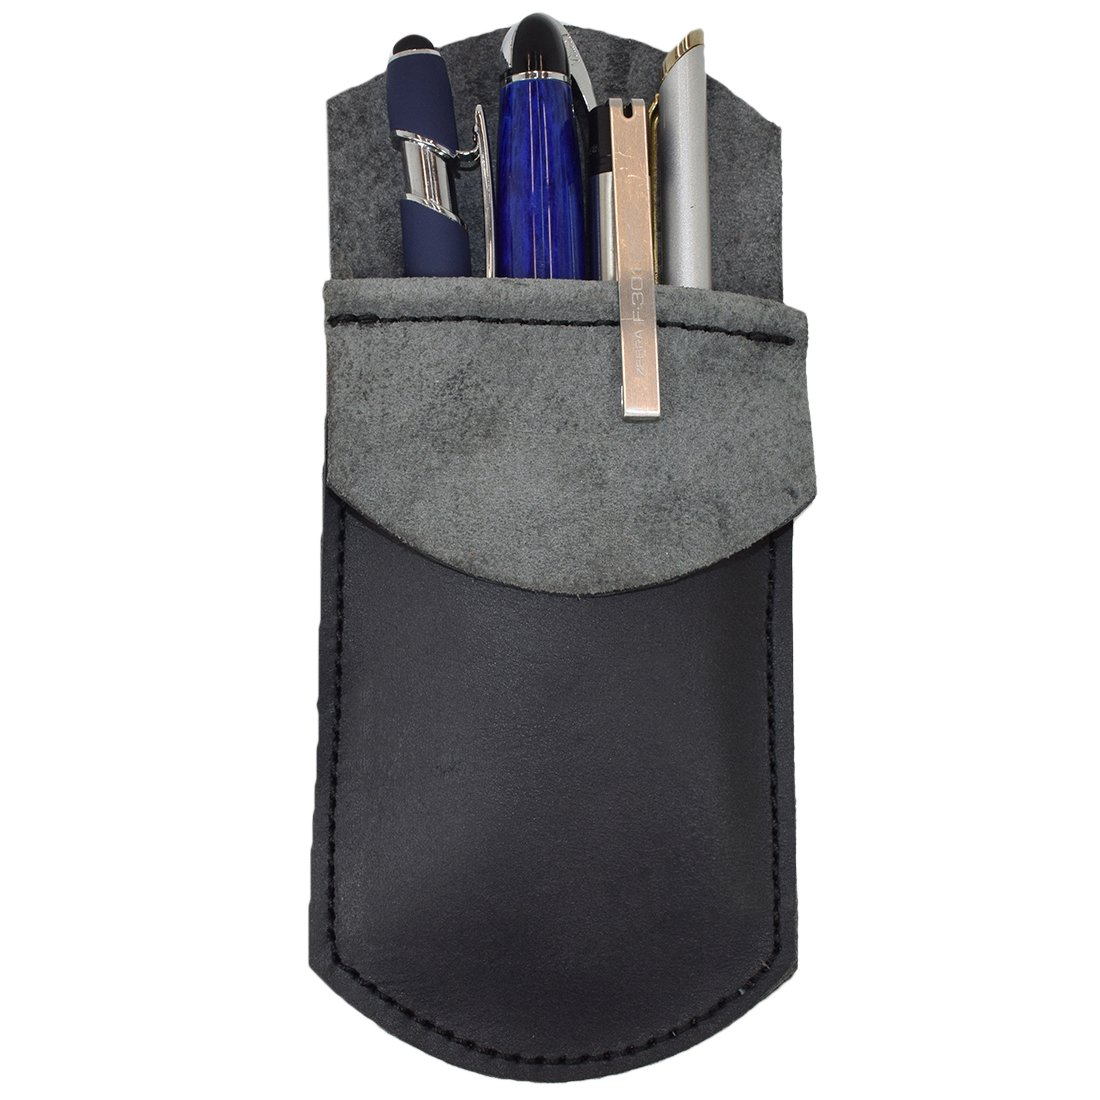 Durable Leather Pocket Protector/Pencil Pouch/Office & Work Essentials Pen Holder Handmade by Hide & Drink :: Charcoal Black